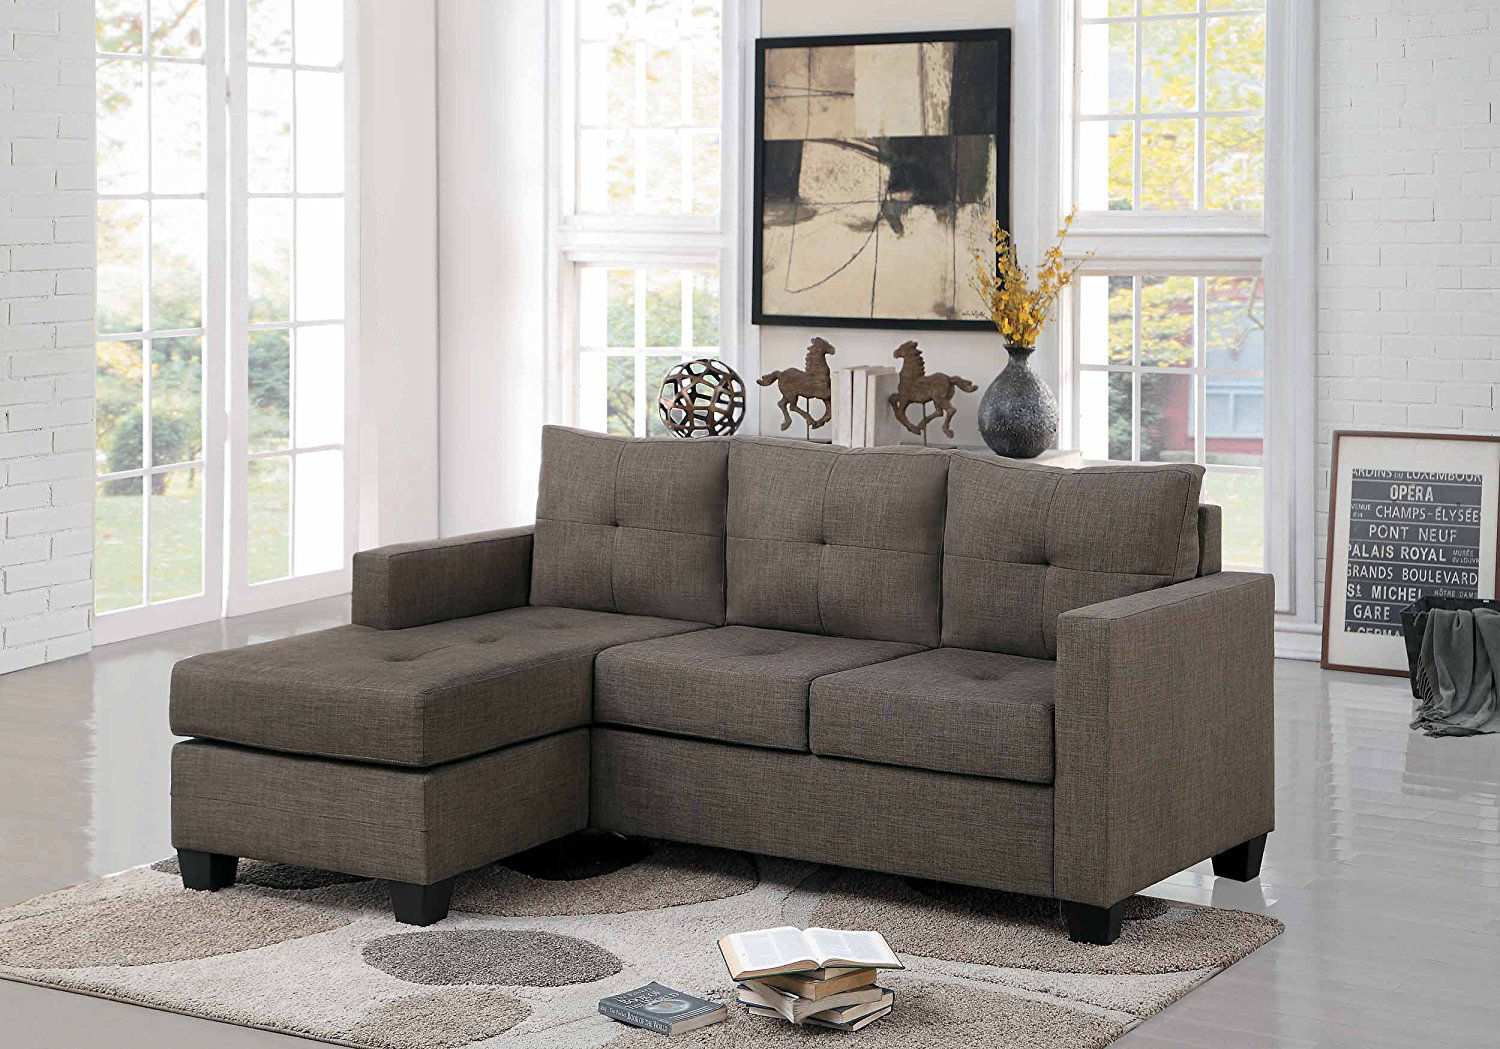 The Best Cheap Living Room Furniture That Isn t from Ikea   Sunset     The Best Cheap Living Room Furniture That Isn t from Ikea   Sunset Magazine